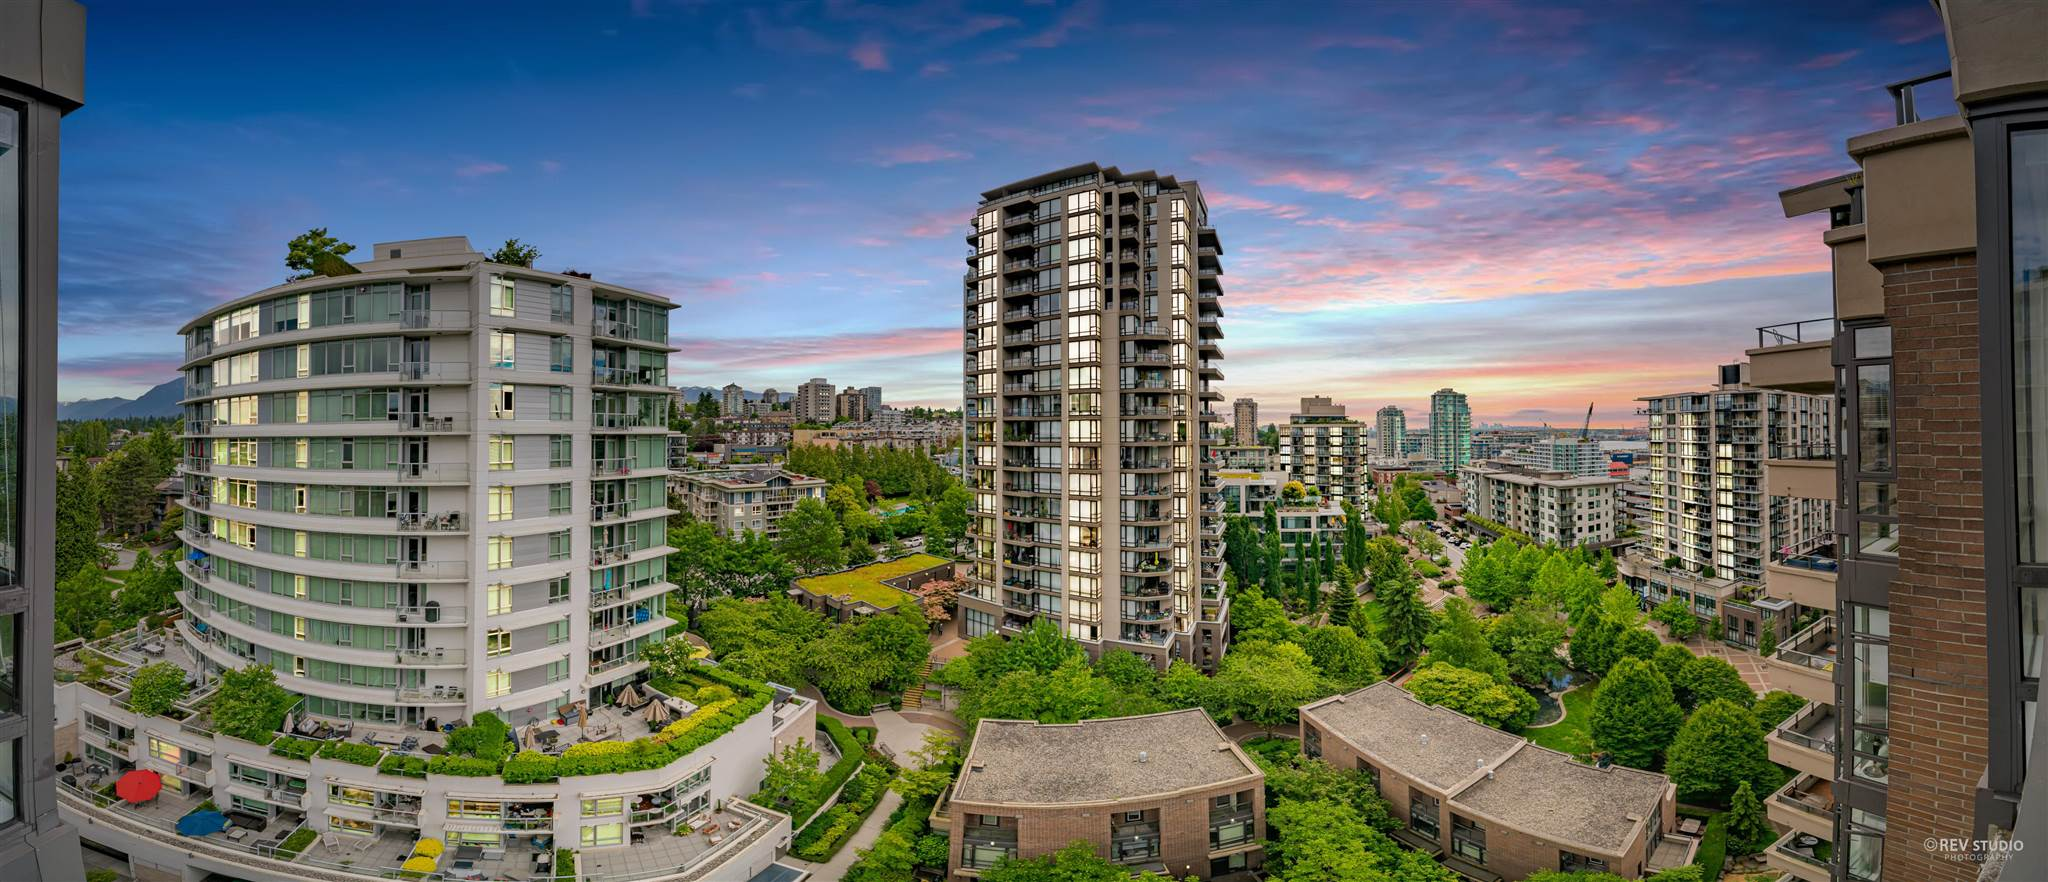 1201 170 W 1ST STREET - Lower Lonsdale Apartment/Condo for sale, 2 Bedrooms (R2603325) - #20